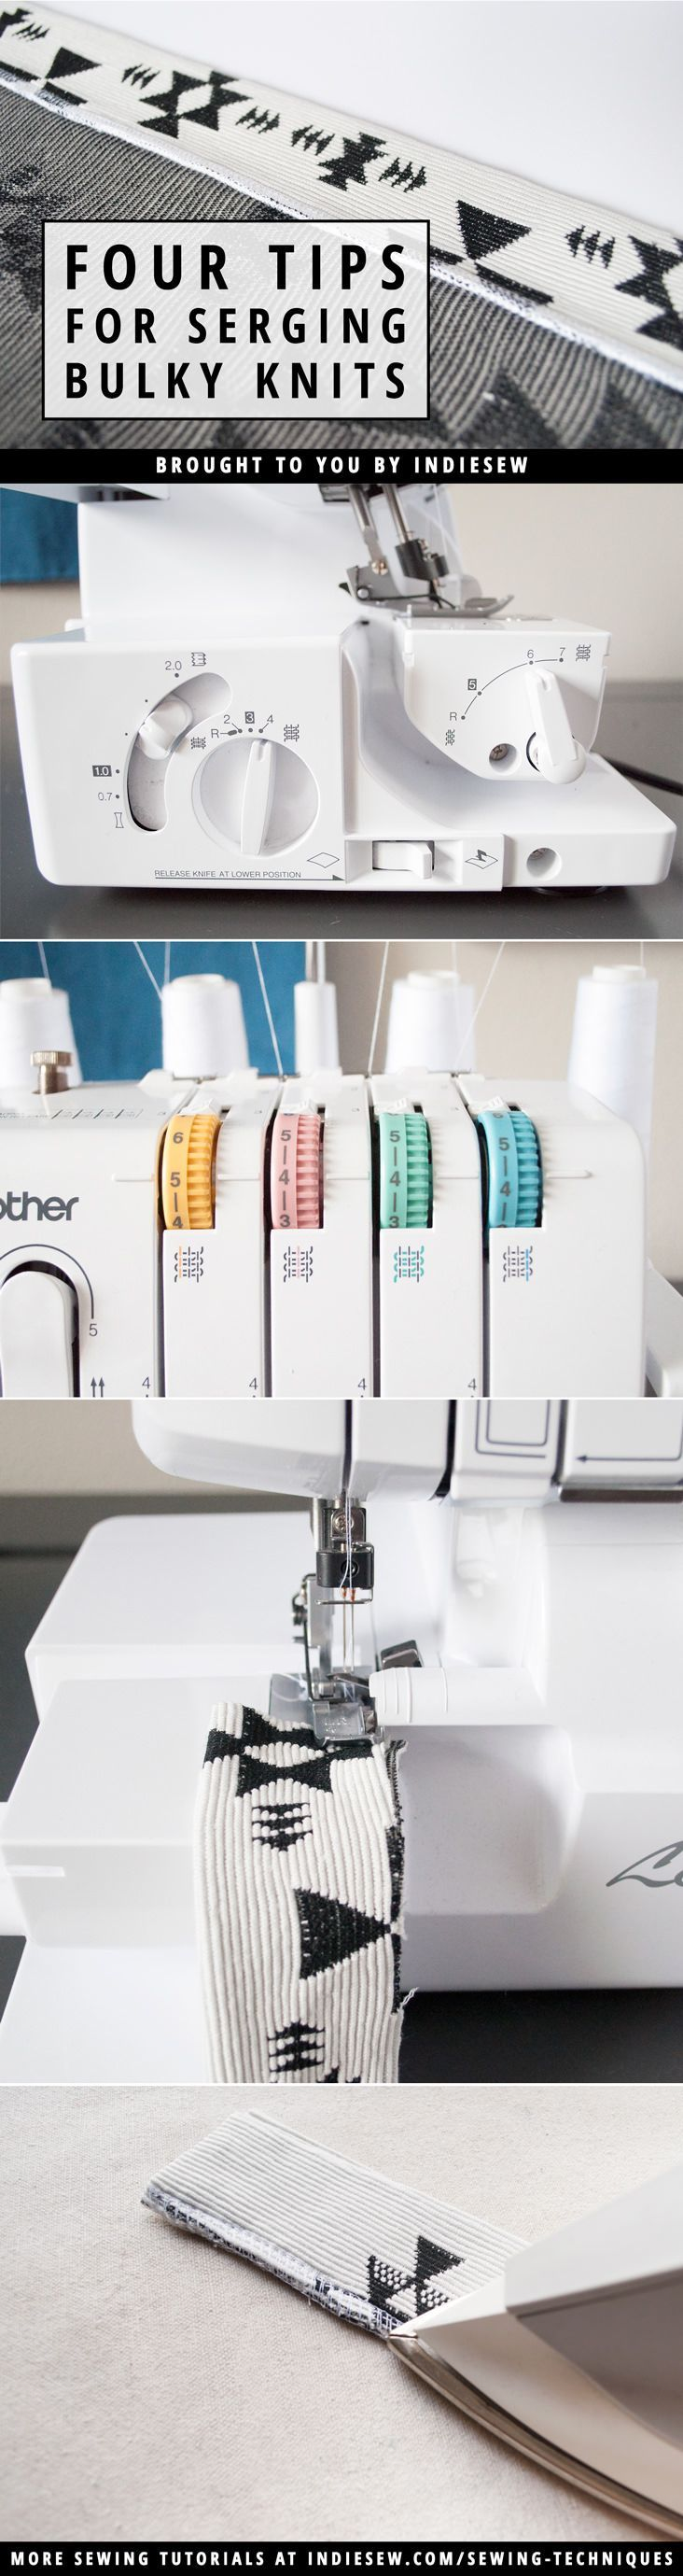 Tips on using the right serger thread.